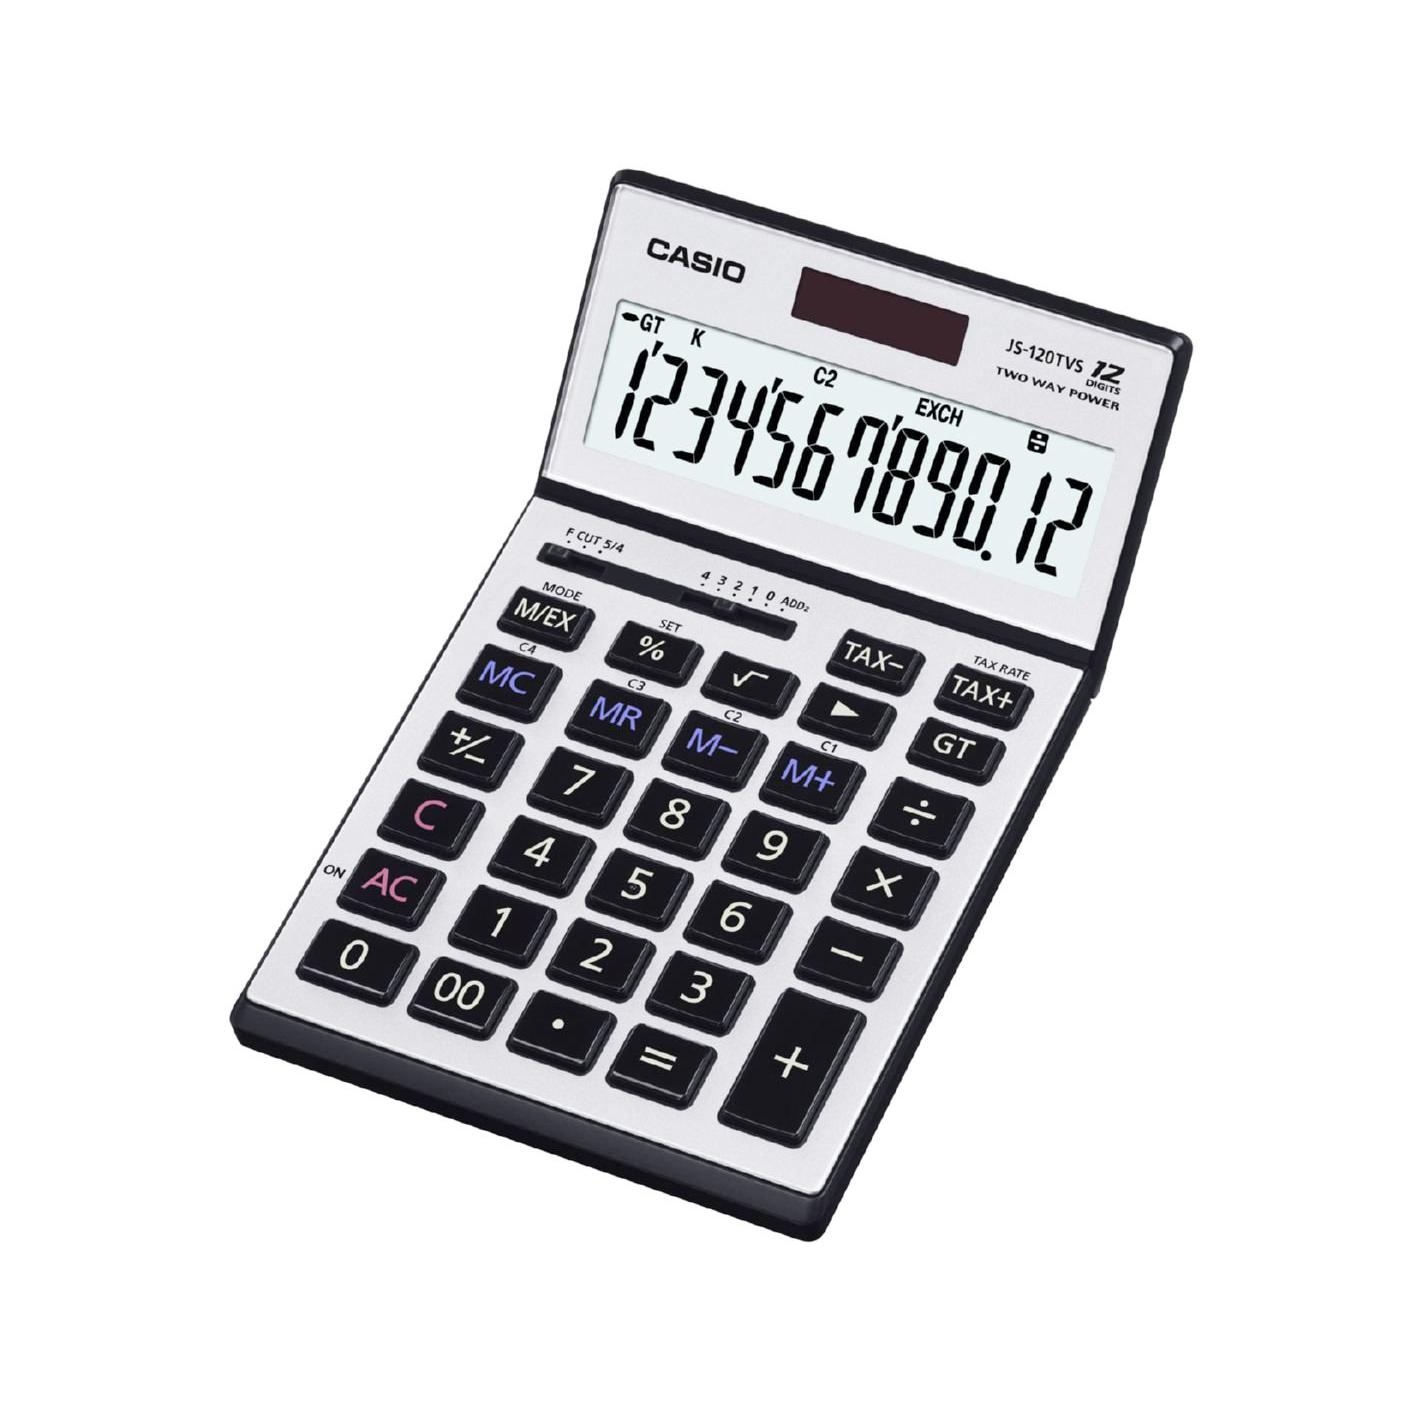 Casio Calculator 12 Digits JS-120TVS